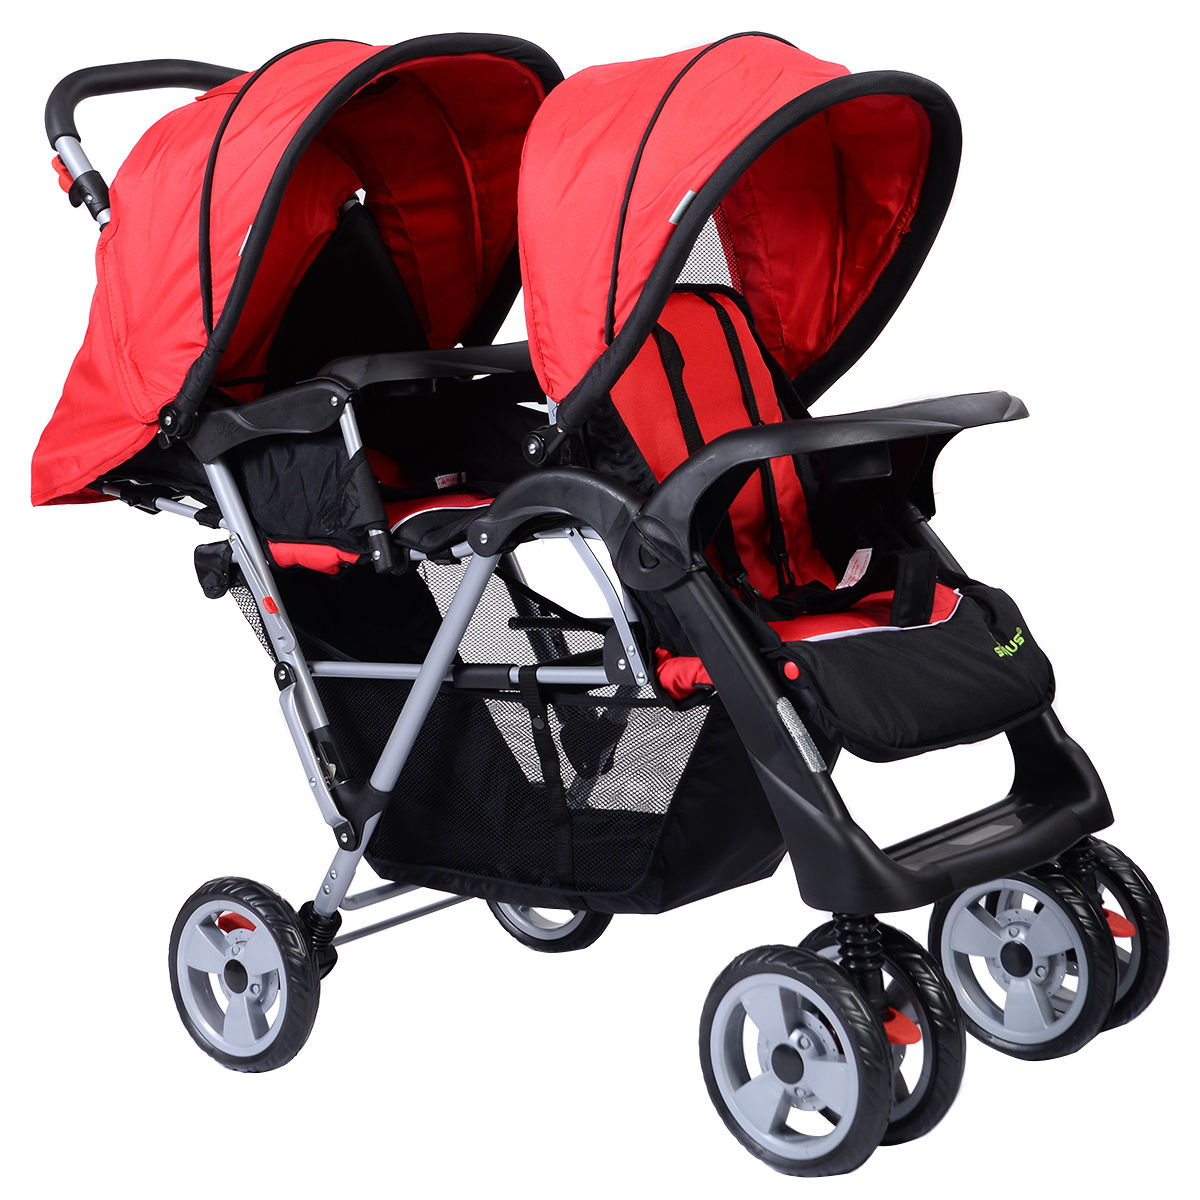 Travel System Tandem Stroller Pushchair Double Stroller Pushchair Tandem Foldable Kids